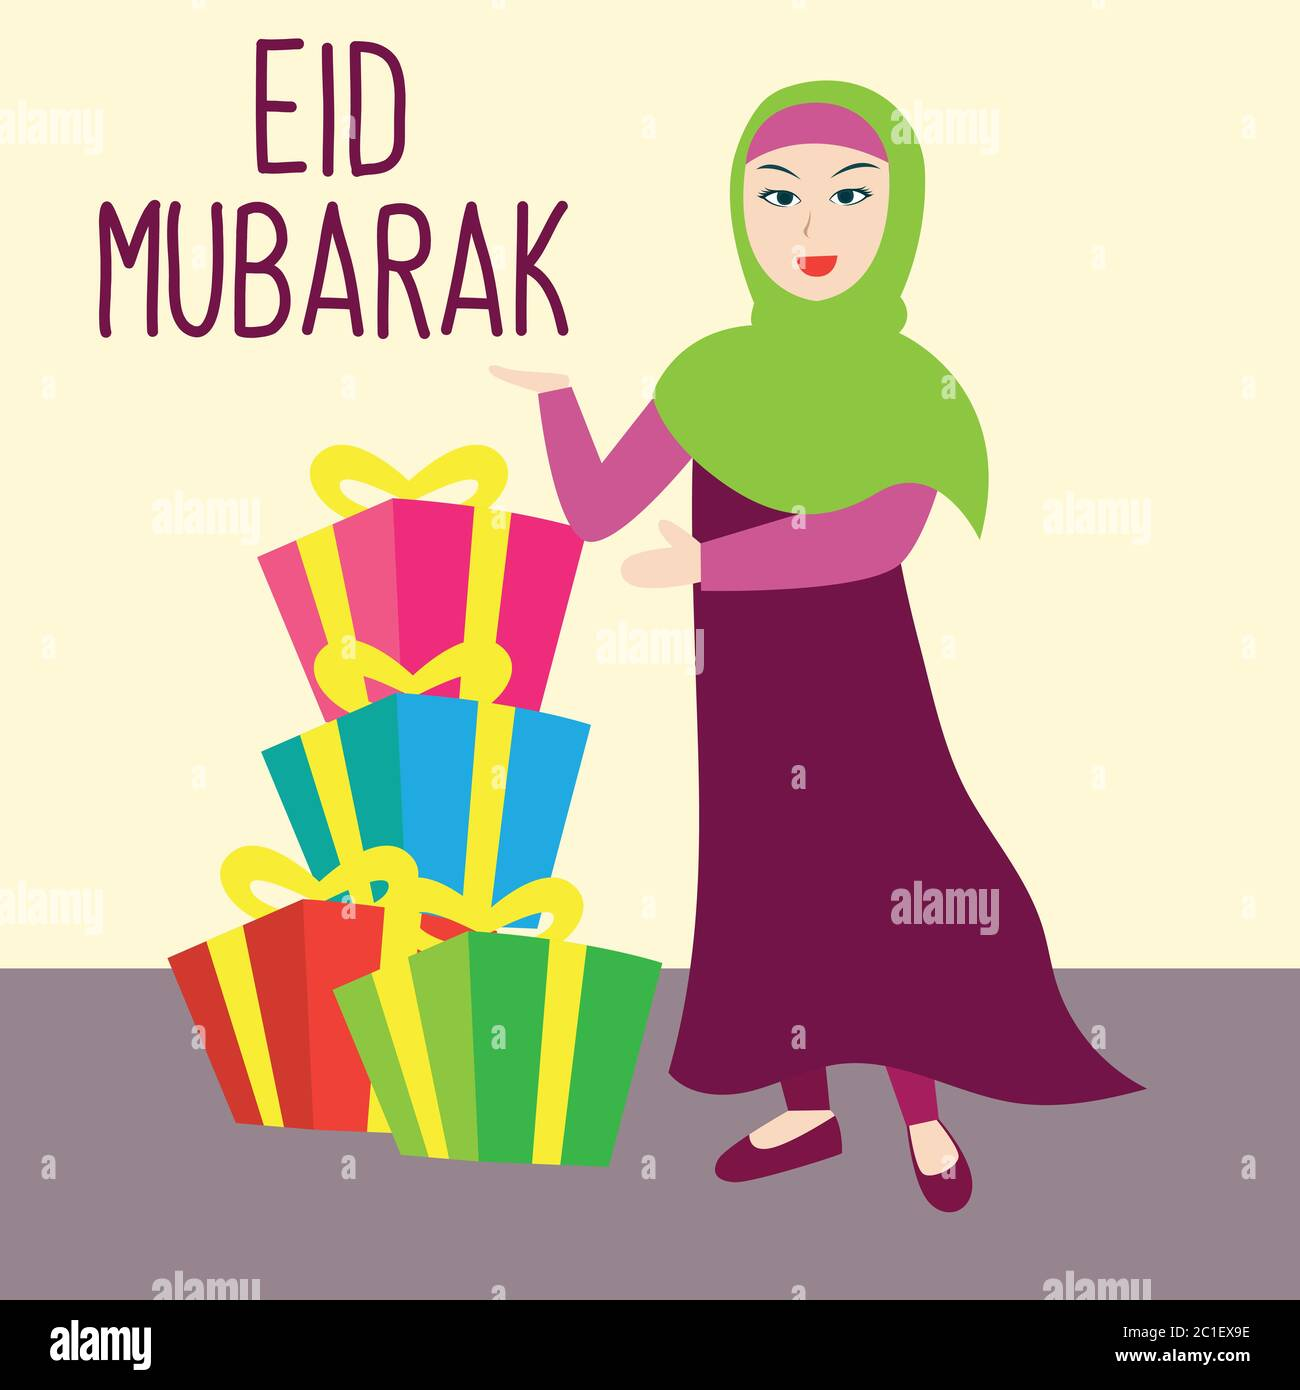 Eid Mubarak Gift For Eid Fitr Holiday Islamic Holiday Vector Illustration Stock Vector Image Art Alamy